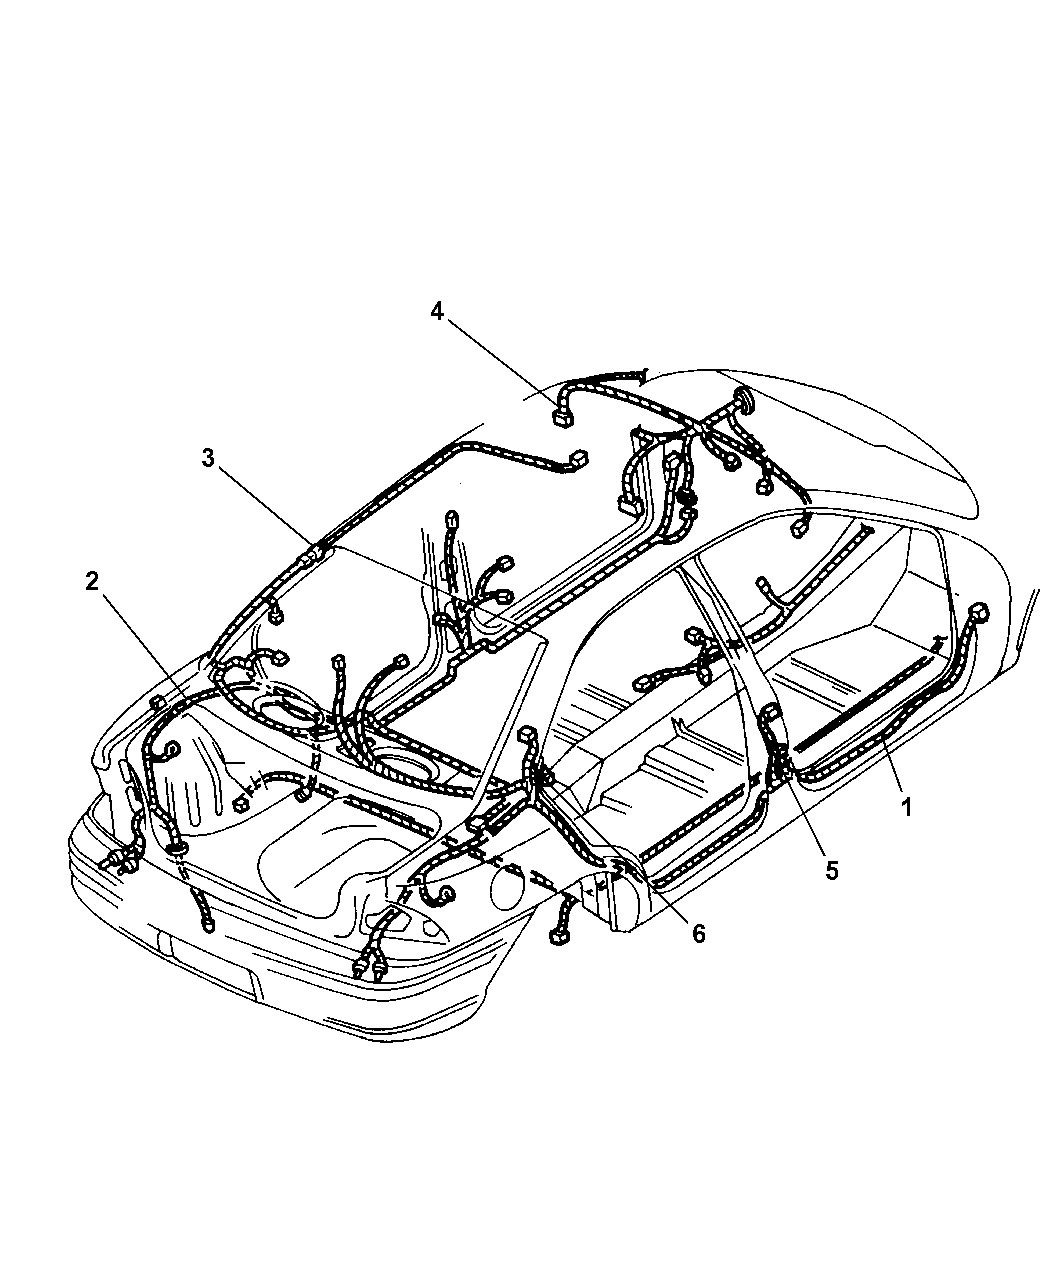 2000 Dodge Neon Side Mirror Wiring Diagram Library Body Accessory